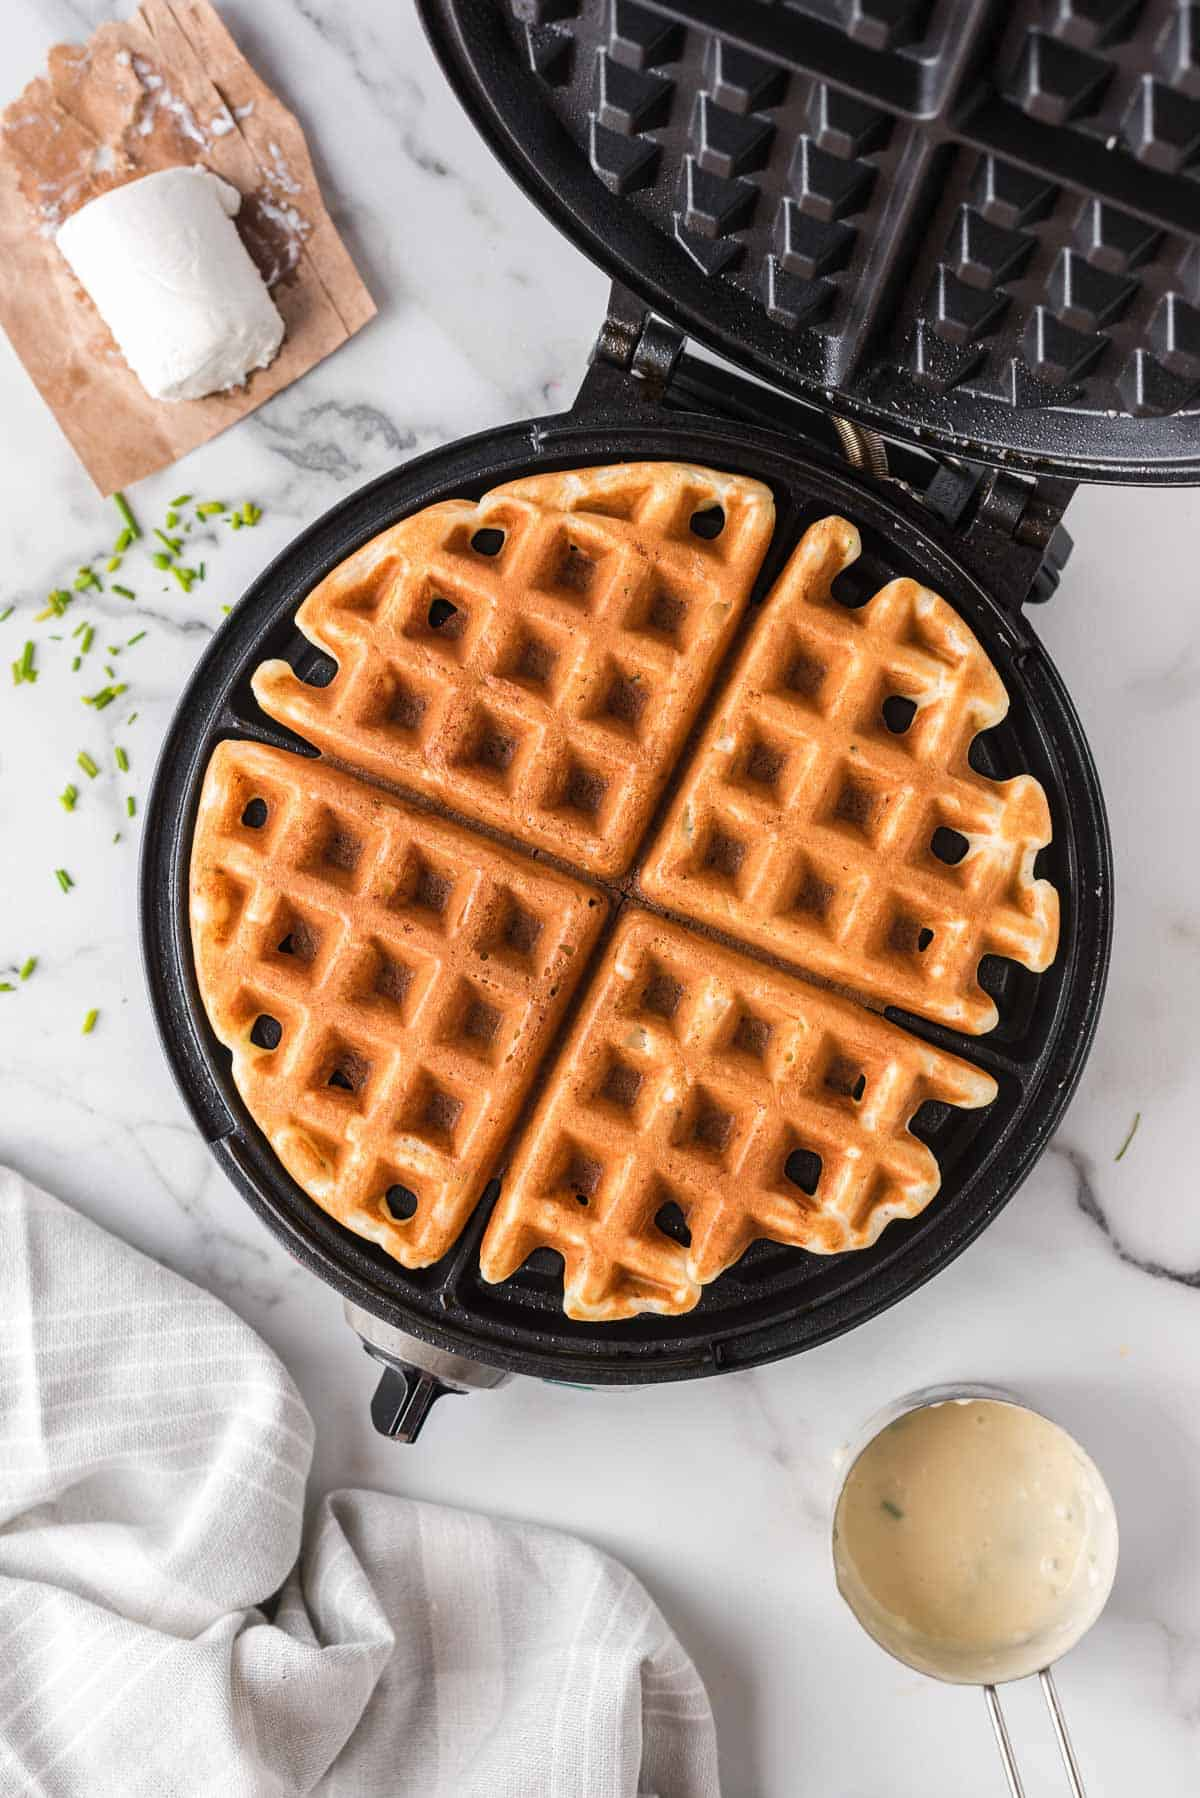 Overhead view of a waffle in a waffle iron, surrounded by ingredients.